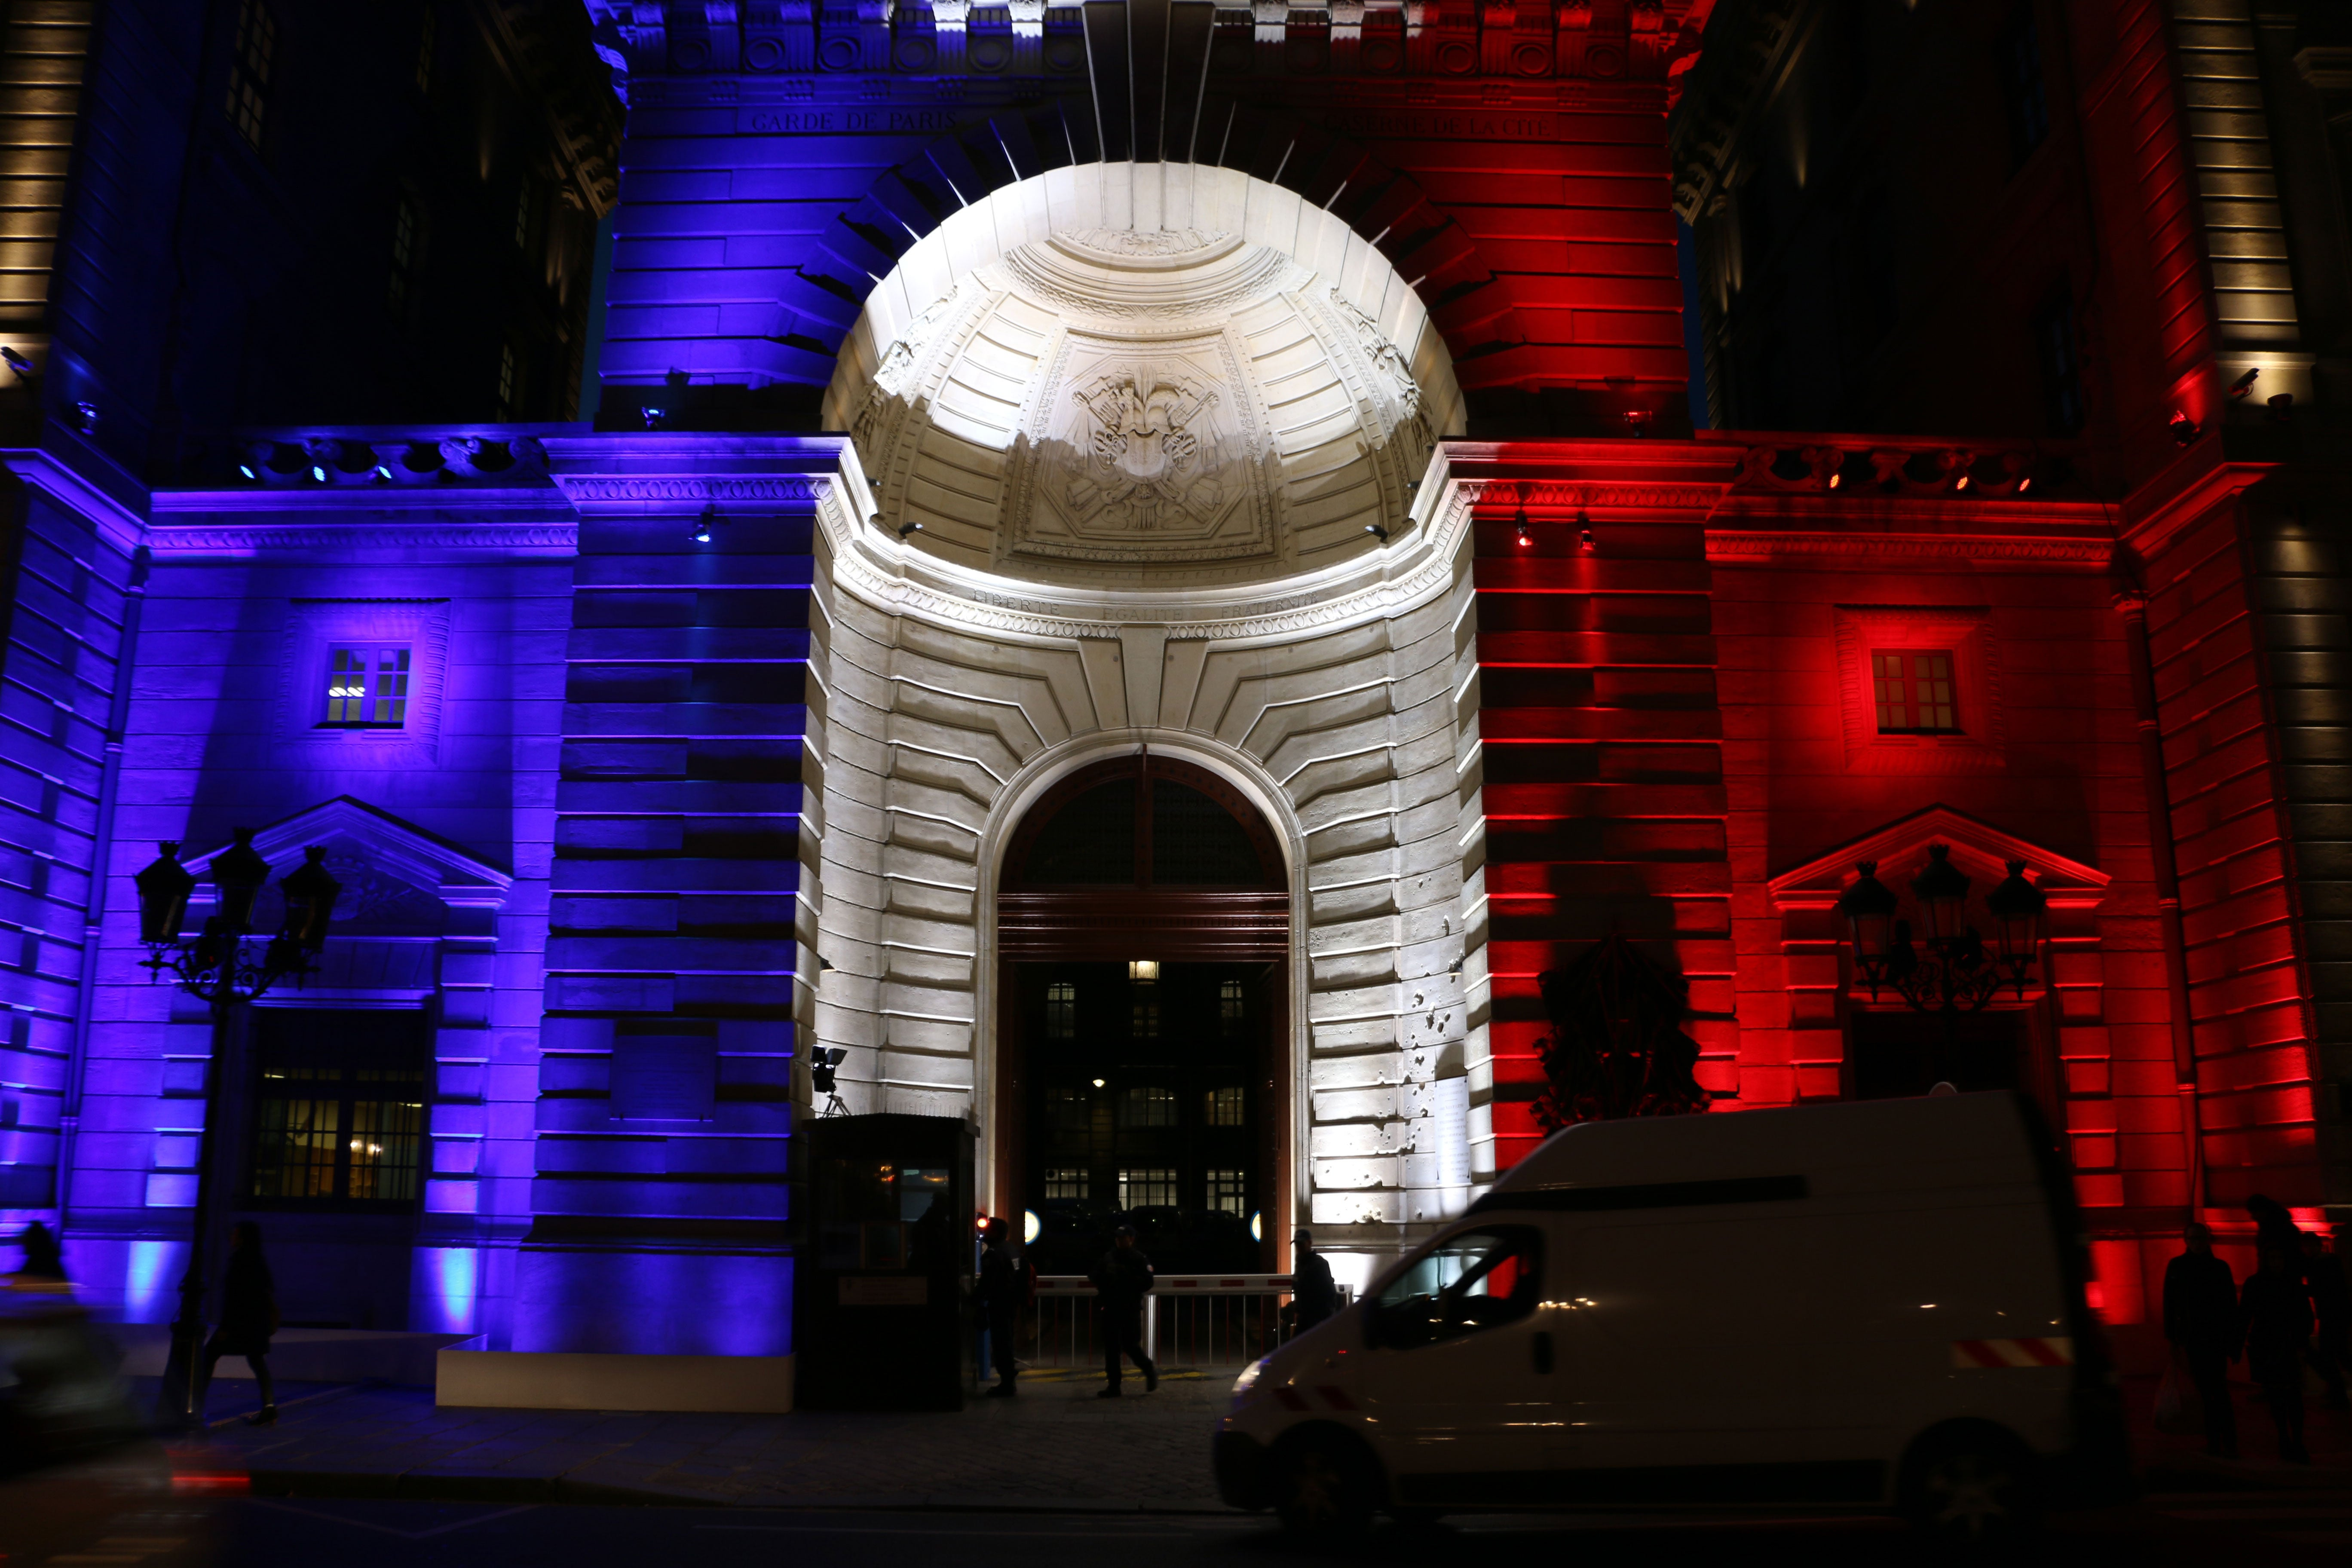 A building lit up in France's national colors in November 2015, days after a deadly terror attack. (Photo: Nolan Peterson/The Daily Signal)